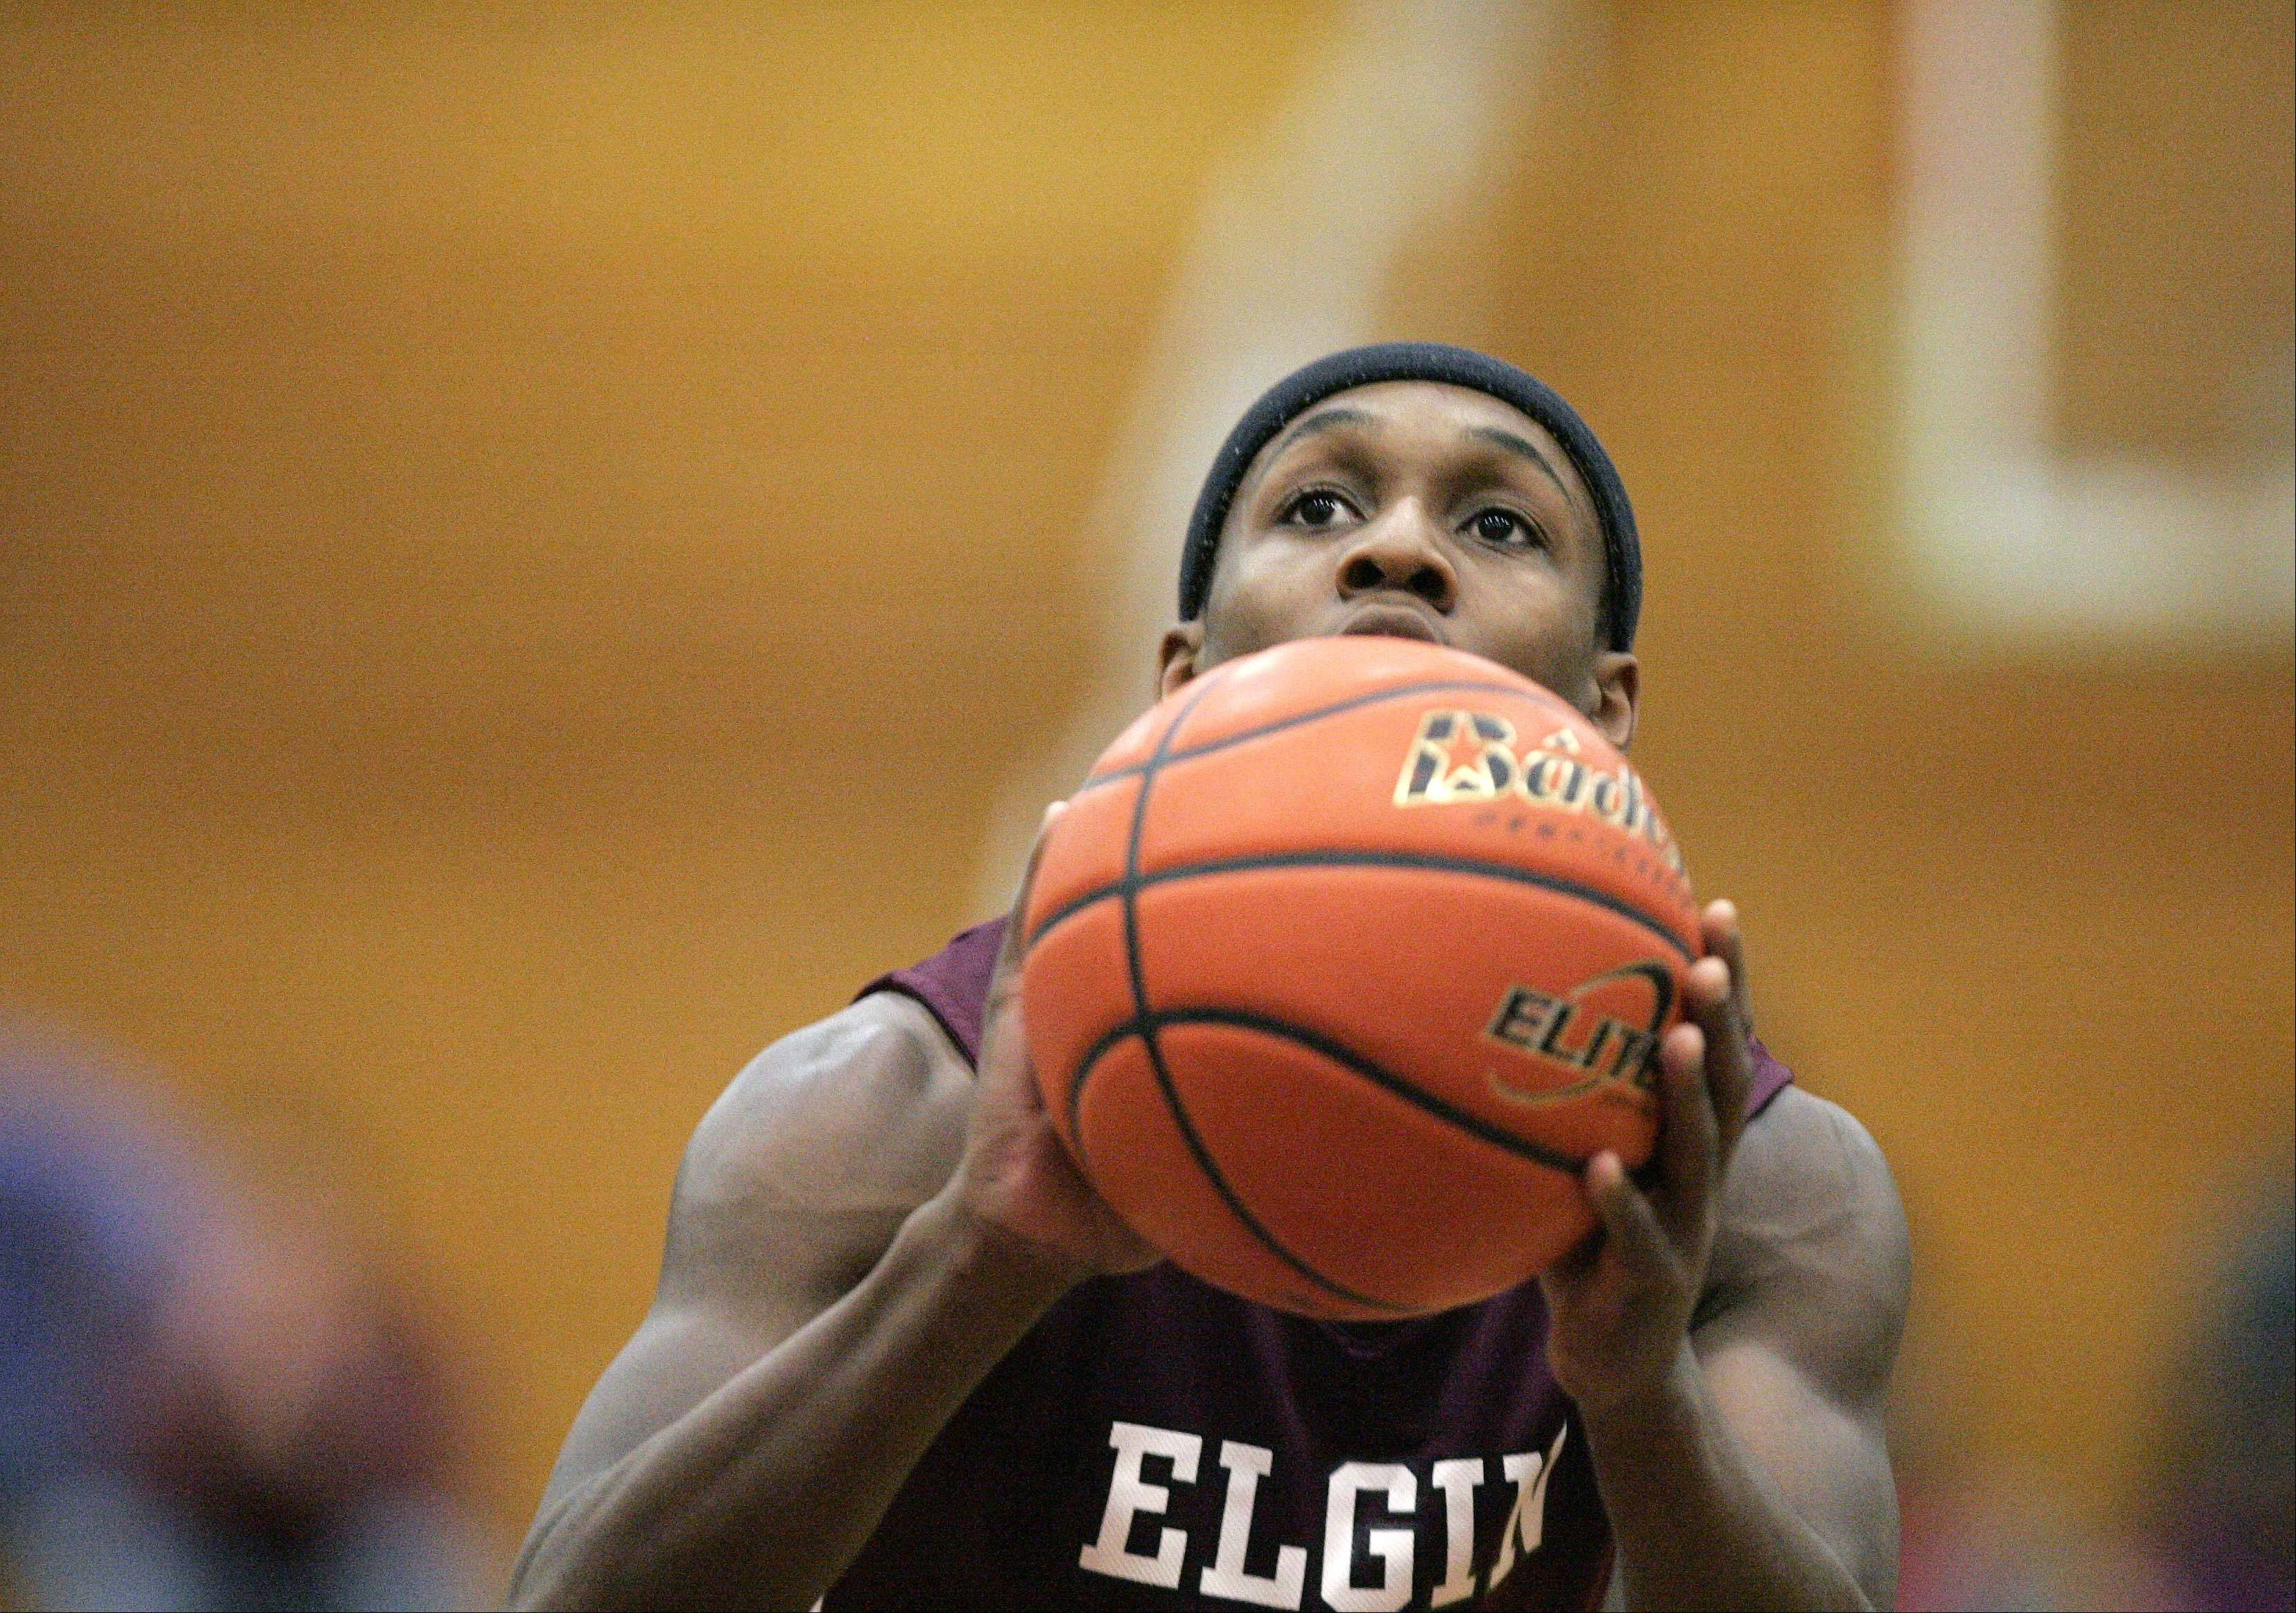 Elgin wing Arie Williams (10) shoots one of his free-throws against Dundee-Crown at the 38th Annual Elgin Boys Holiday Basketball Tournament Thursday December 27, 2012.